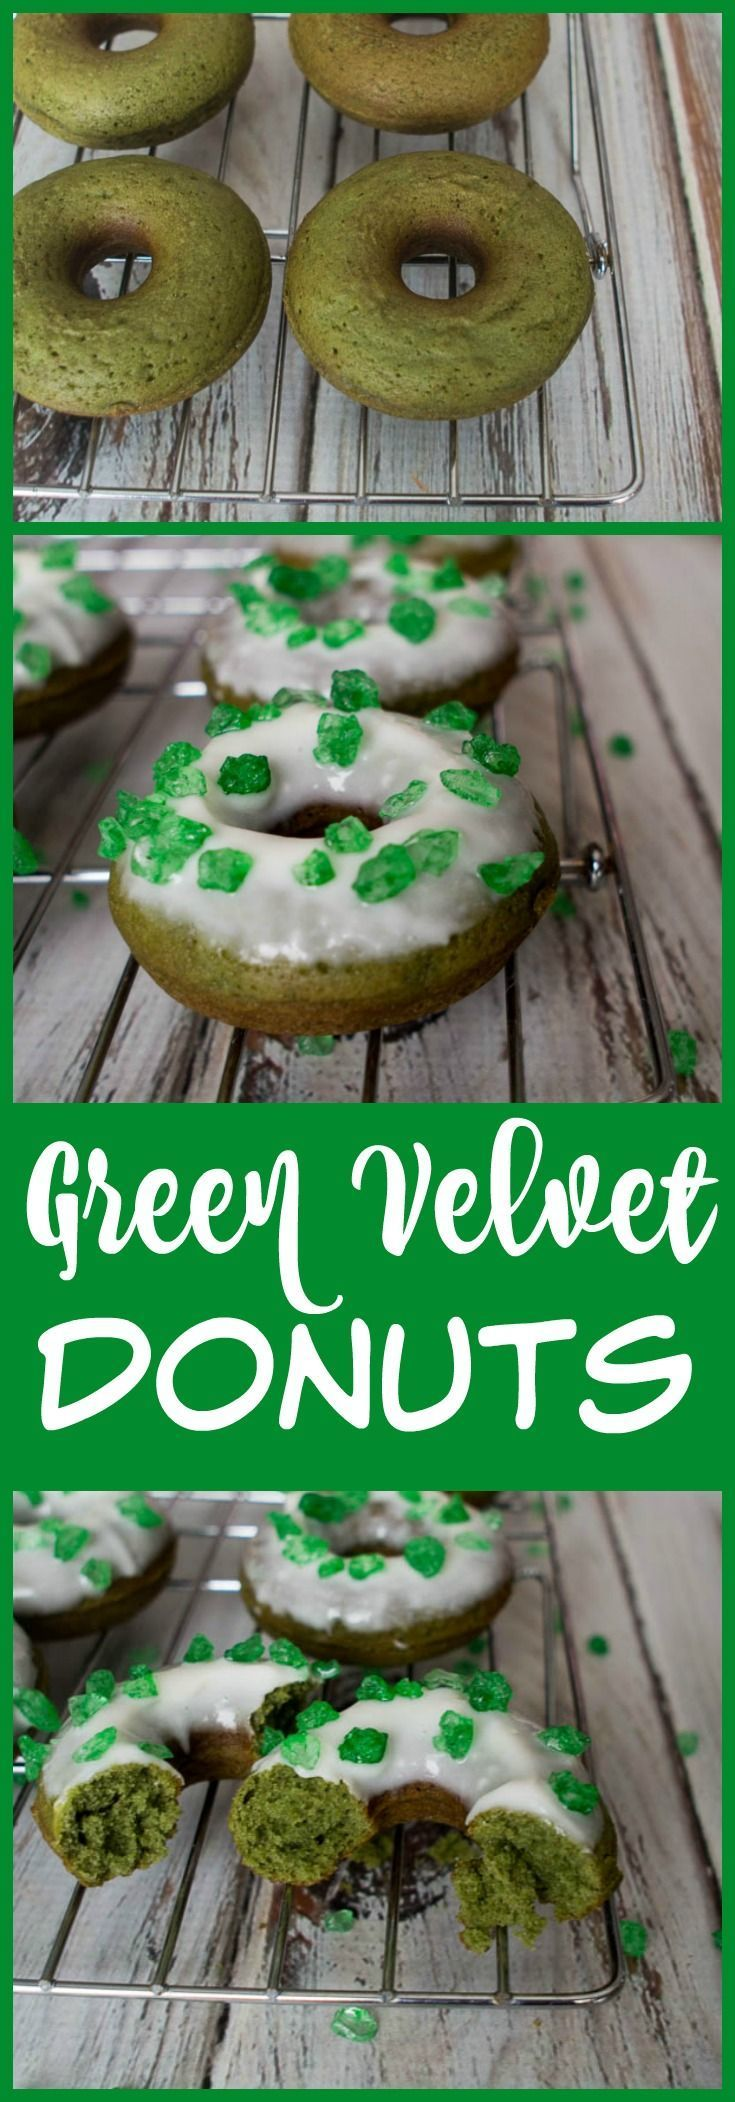 Green Velvet Donuts with Cream Cheese Frosting for St. Patrick's Day! These Green Velvet donuts are a nice twist on classic Red Velvet.